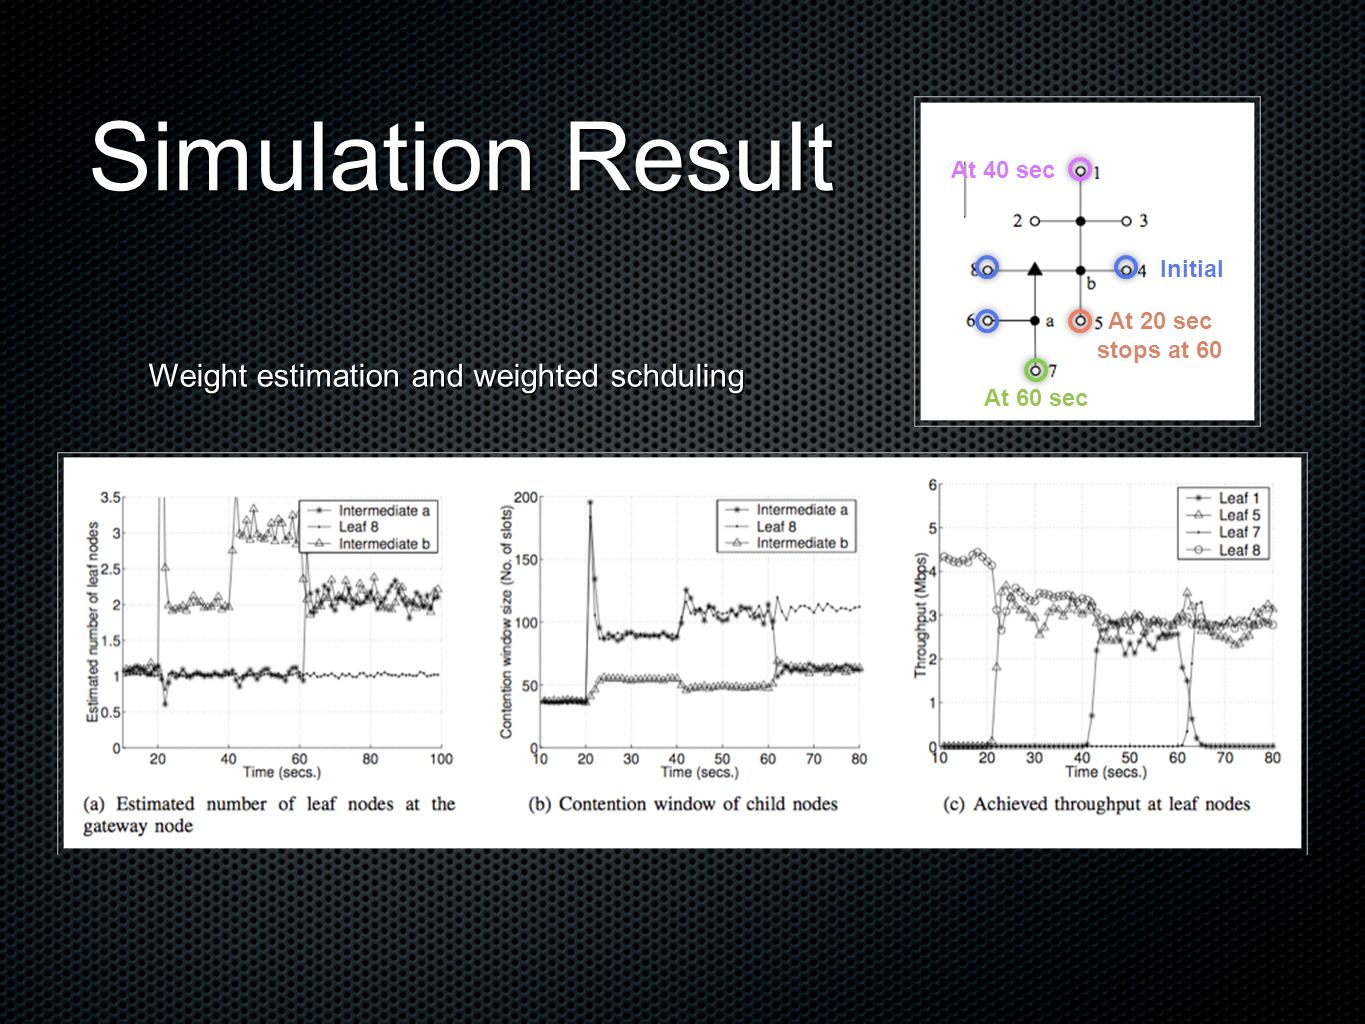 Simulation Result At 20 sec stops at 60 At 40 sec At 60 sec Initial Weight estimation and weighted schduling